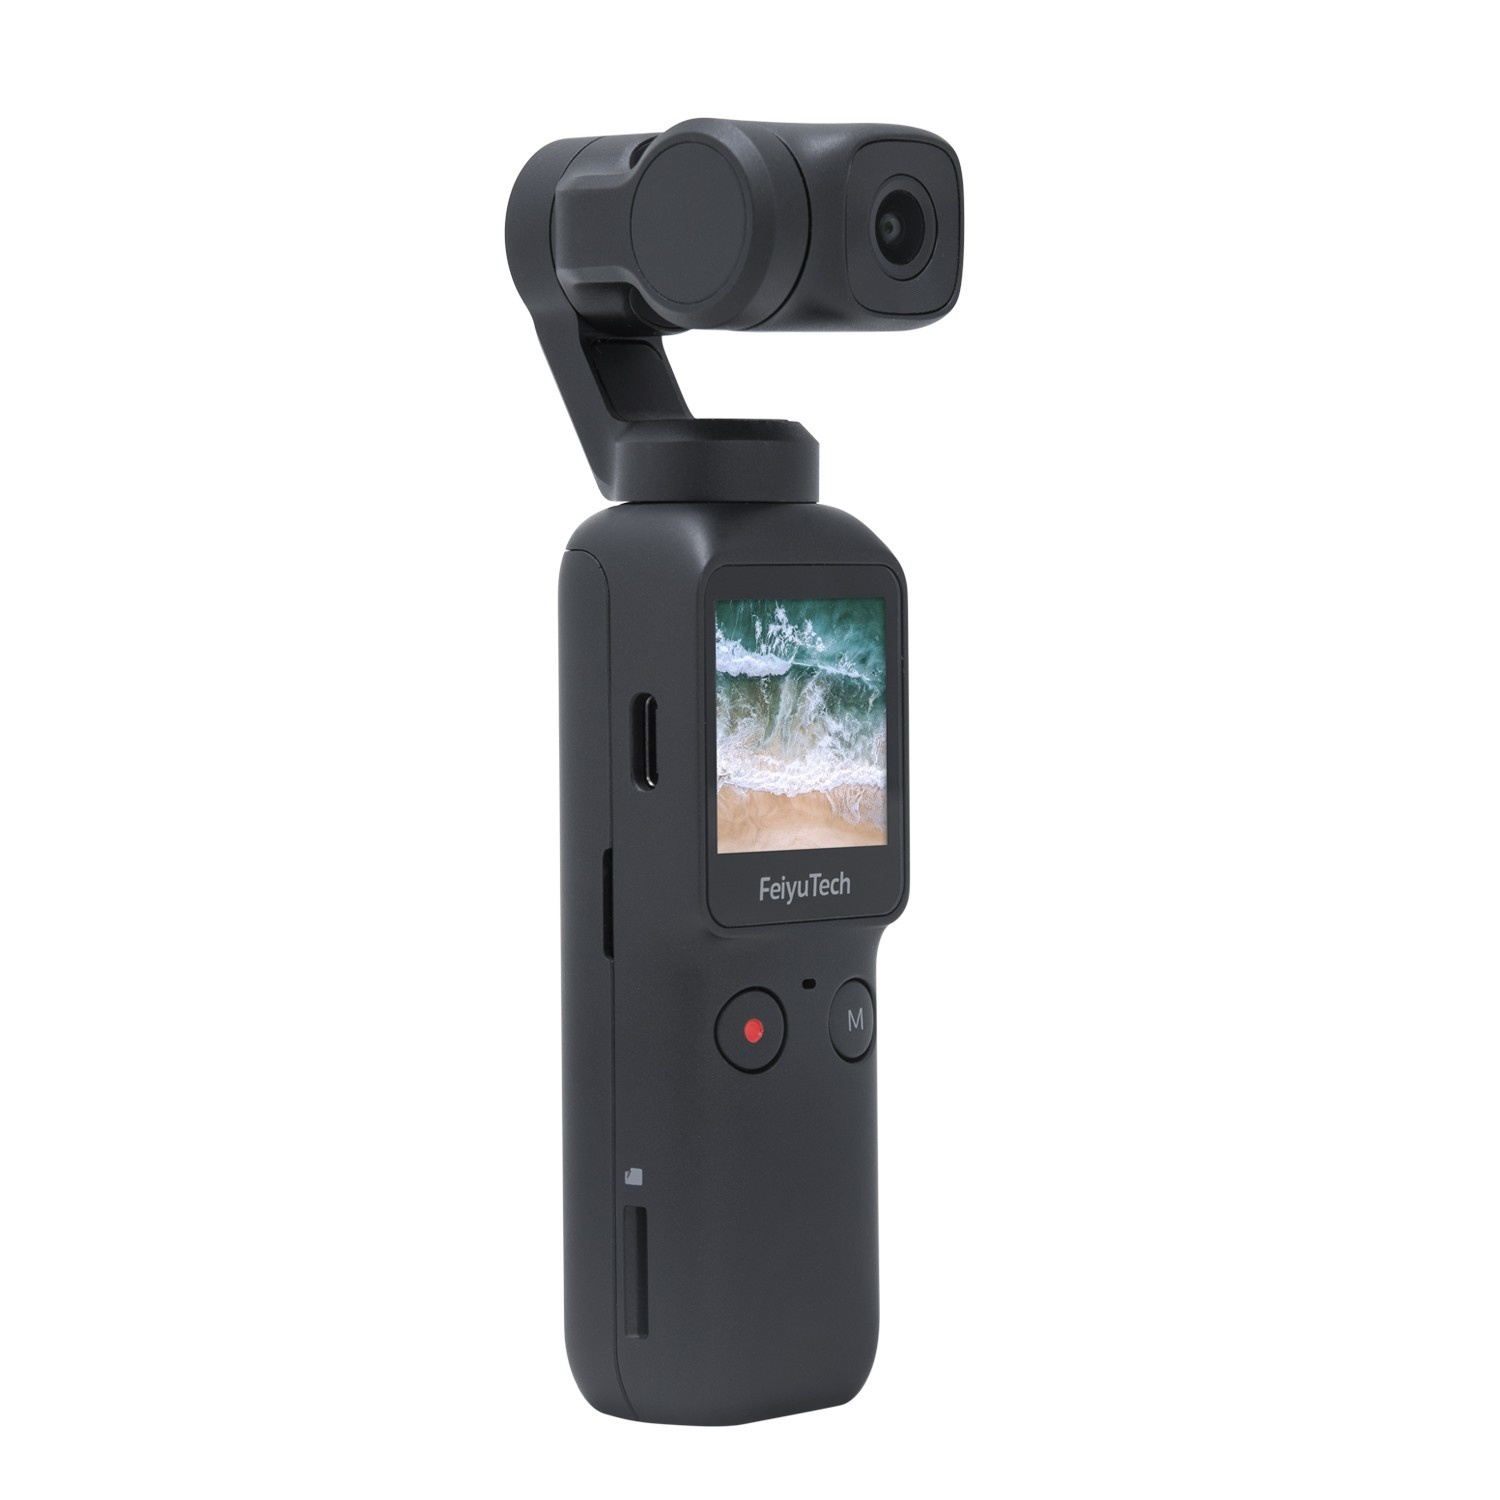 Feiyu Pocket 6-axis Stabilized Handheld Gimbal Camera 120° Ultra-Wide Angle Lens 4K/60fps Video Record Touchscreen